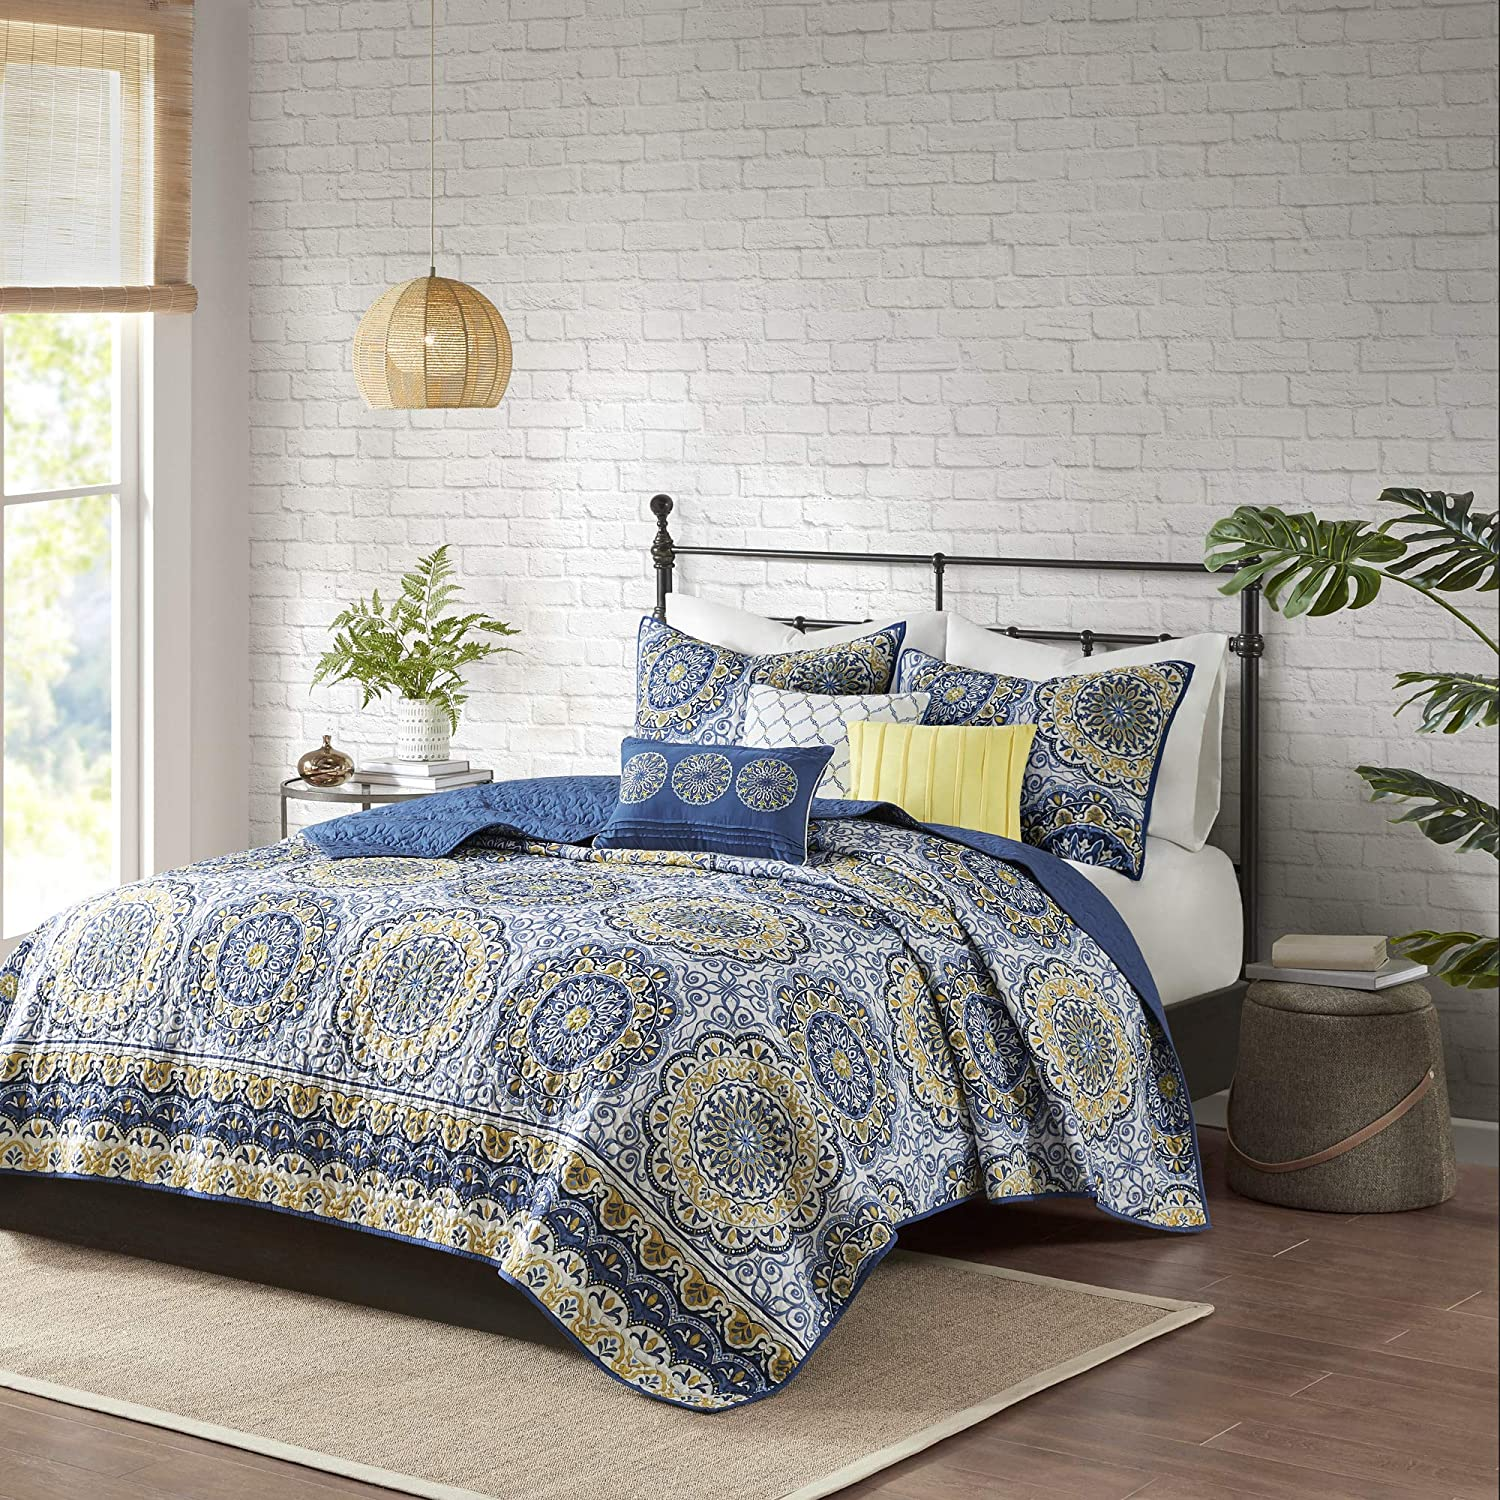 Madison Park Tangiers 6 Piece Reversible Coverlet Set, King/Cal King, Blue